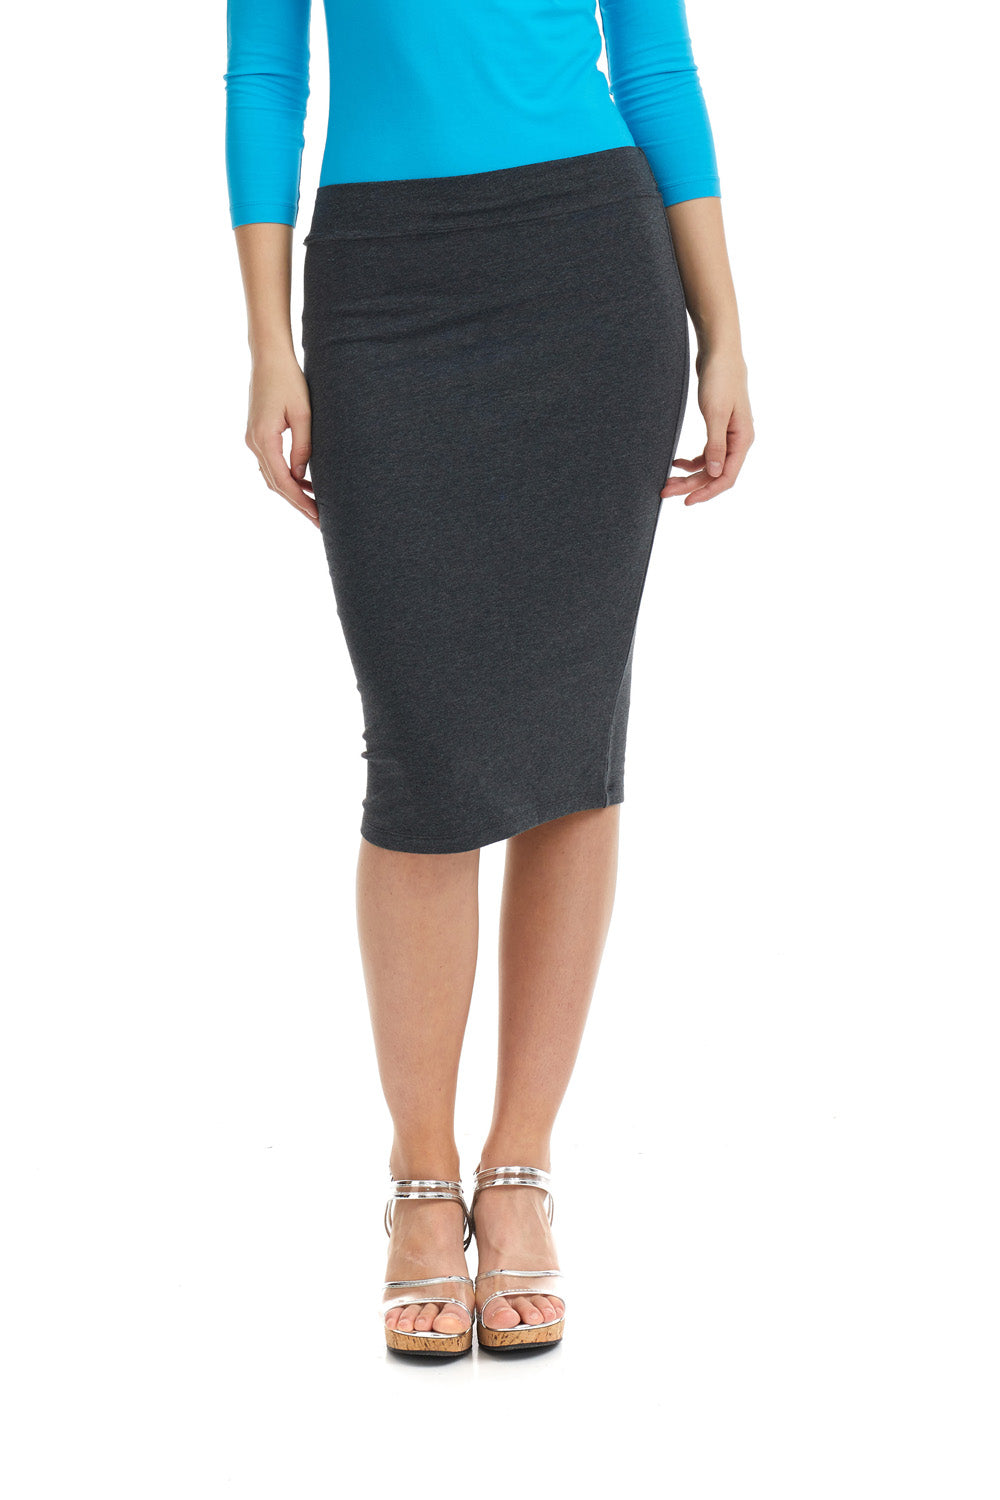 Esteez CHICAGO Skirt - Cotton Lycra Stretchy Pencil skirt for WOMEN - CHARCOAL